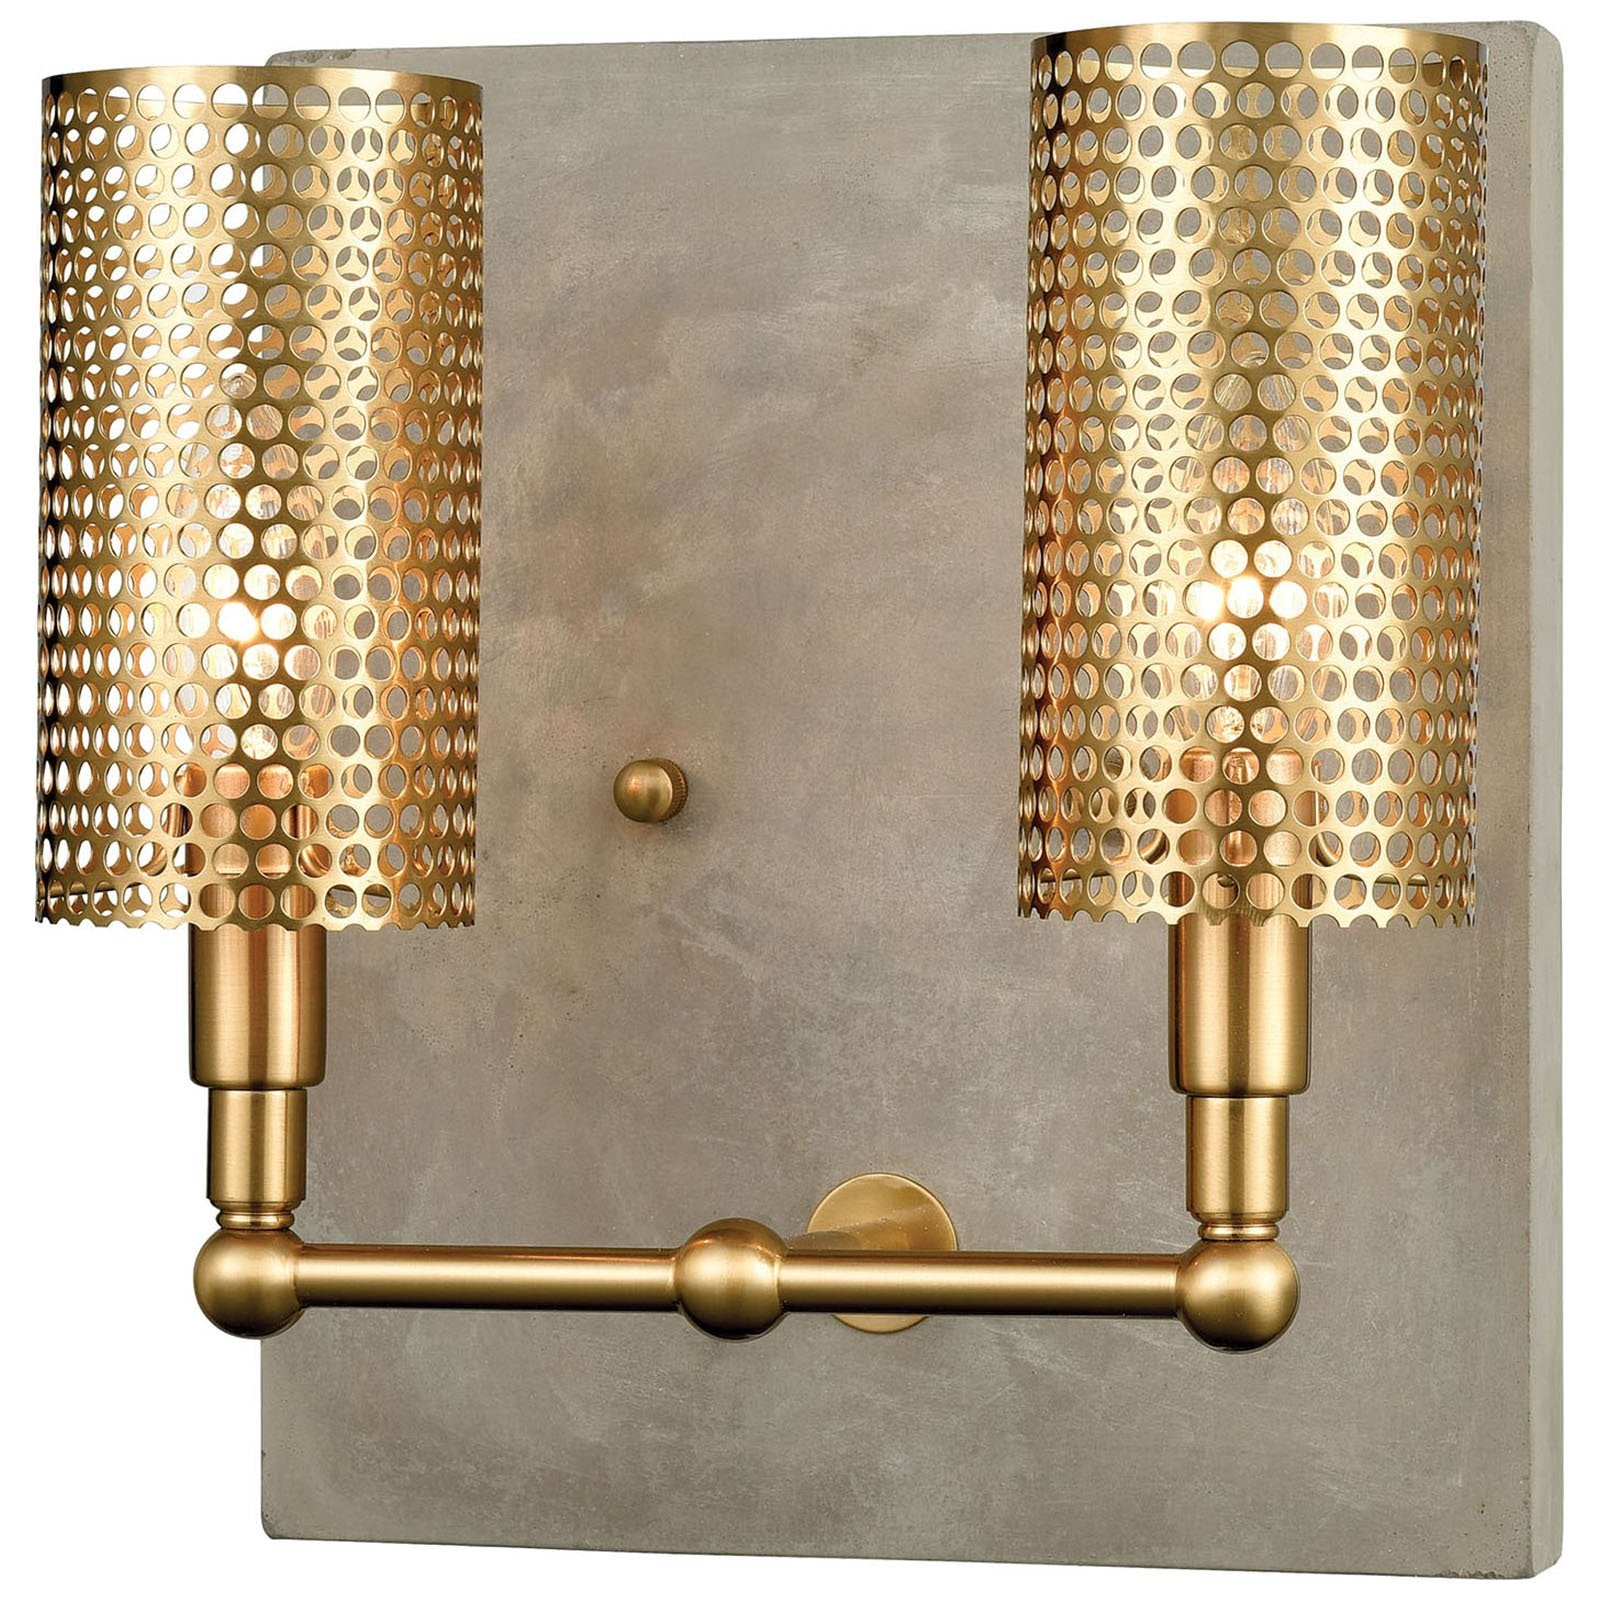 Fuego wall sconce in concrete and new aged brass